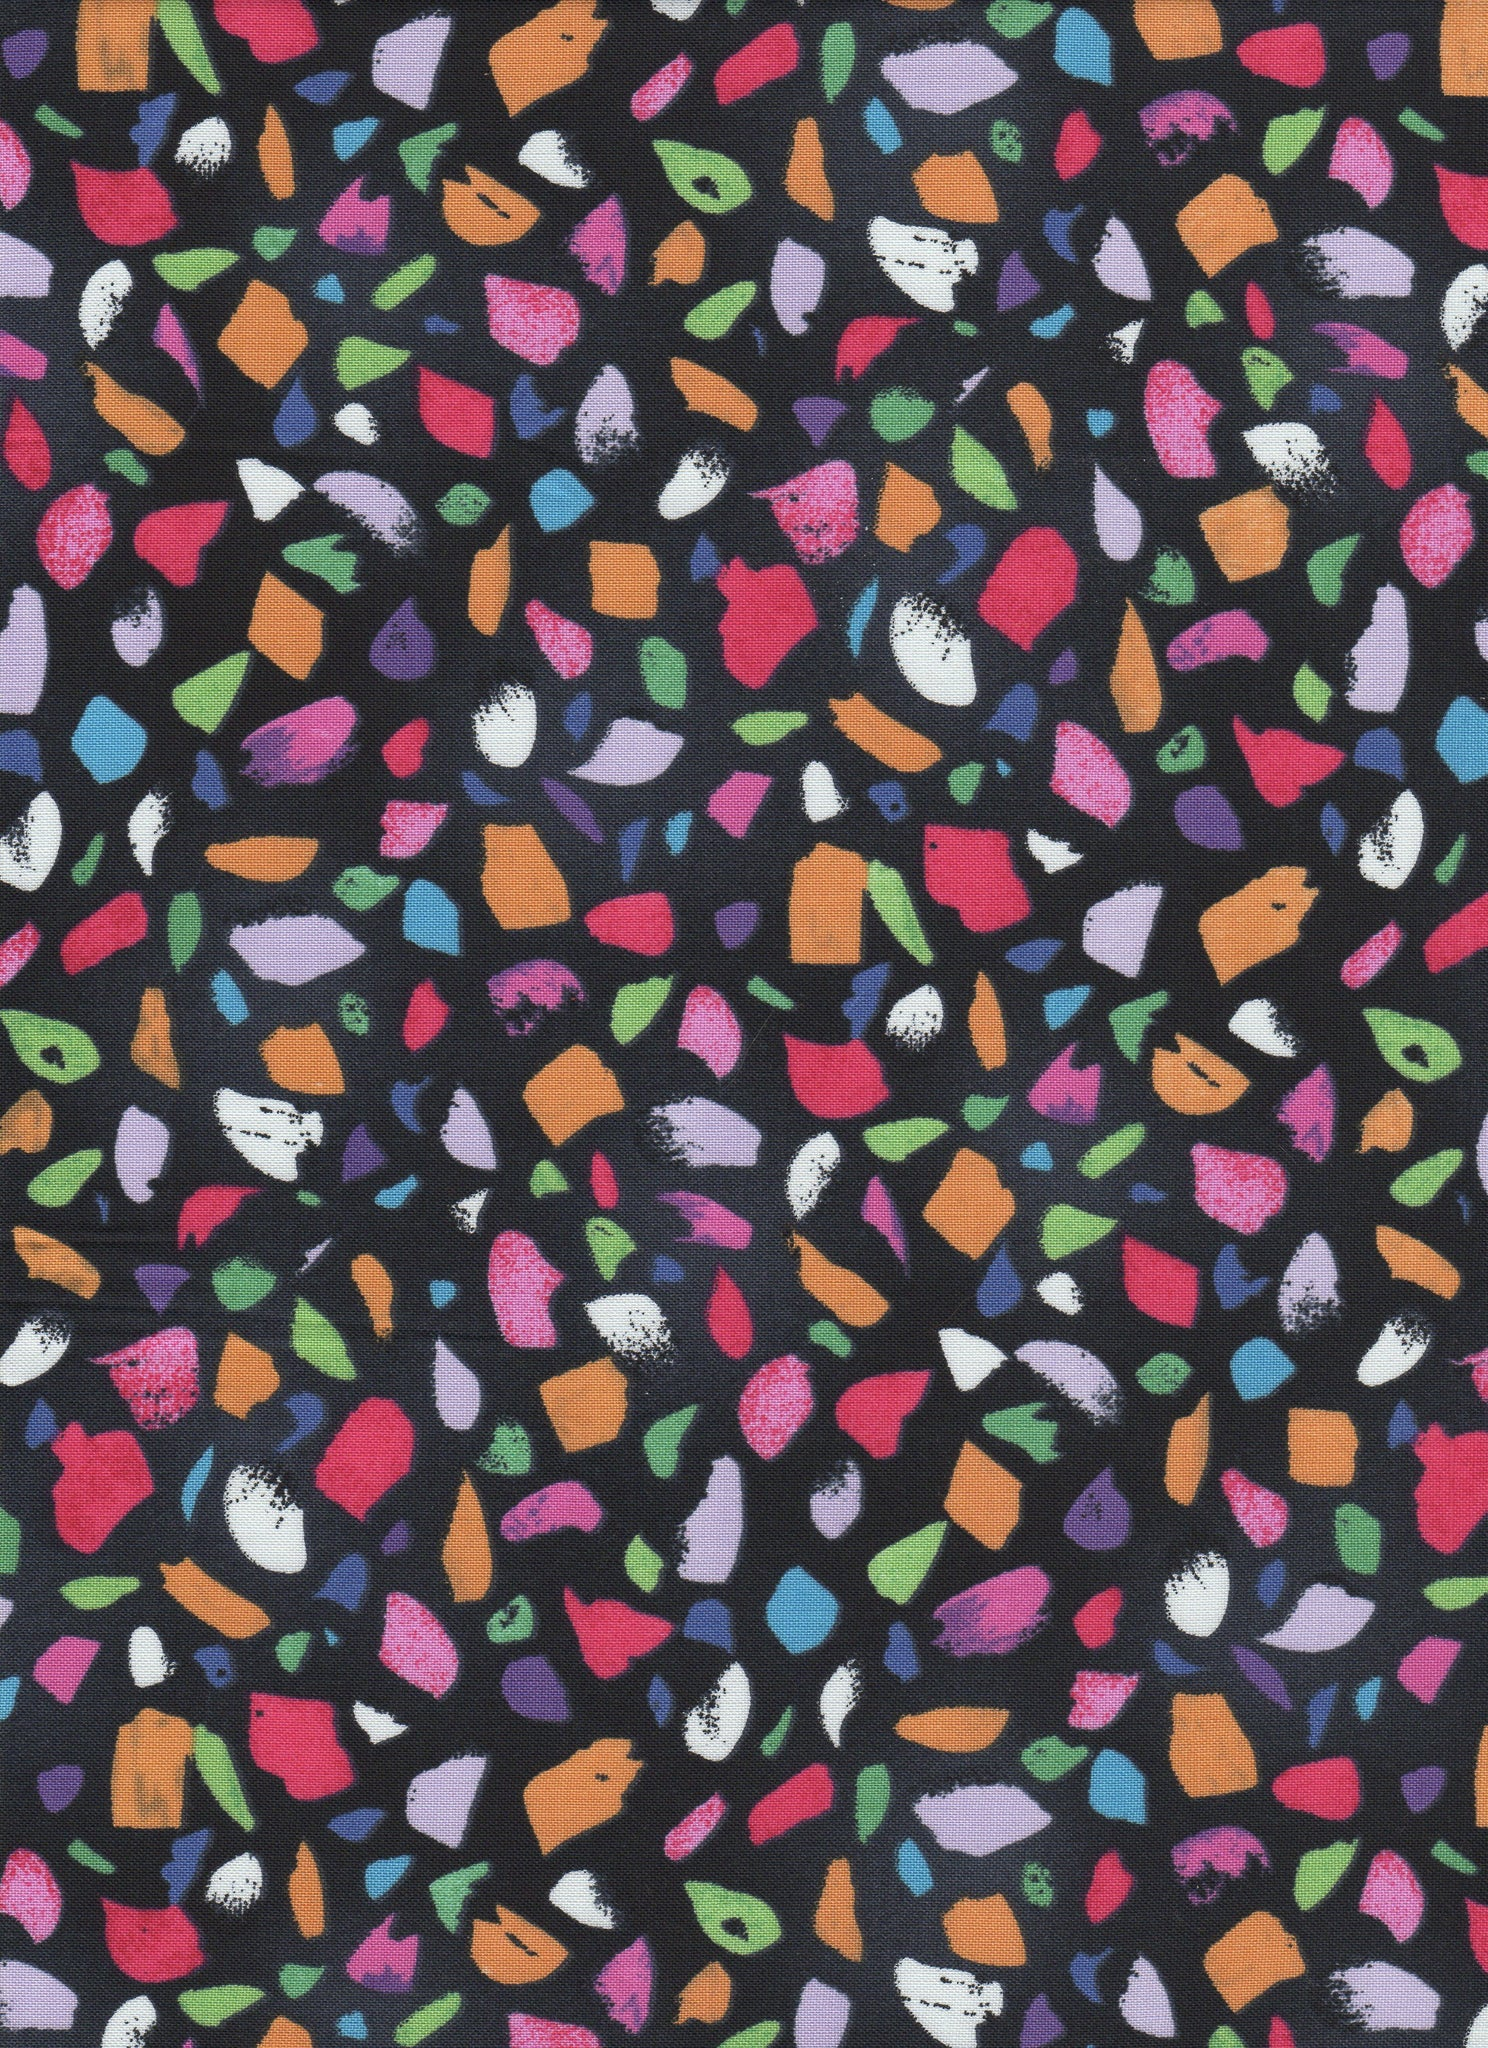 Multicolor Stones on Black Background - Fat Quarter